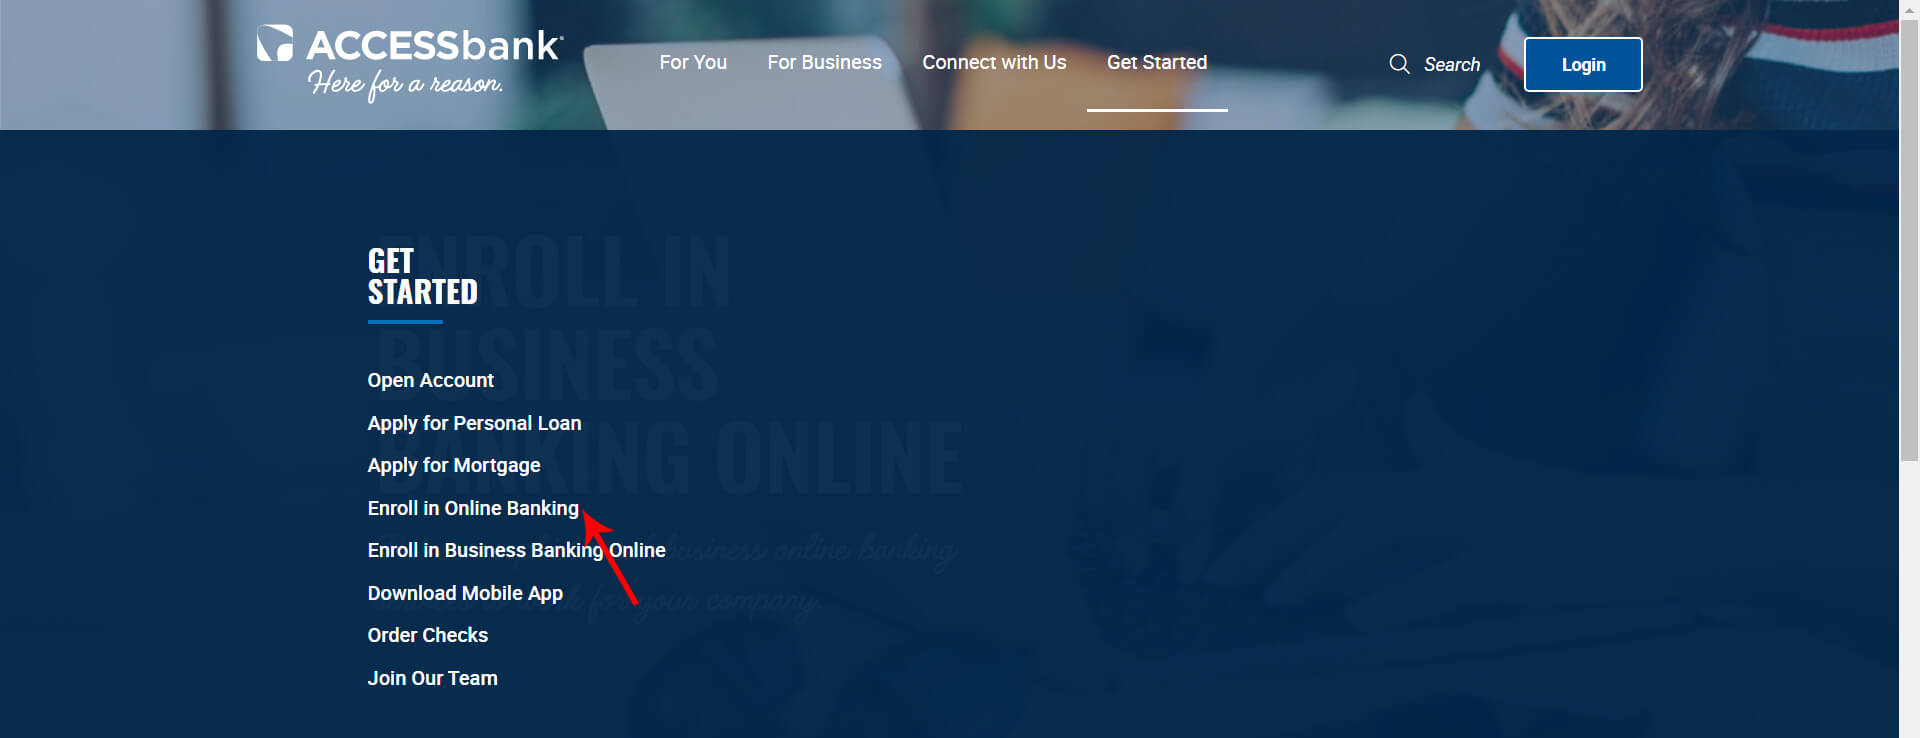 Enroll in Online Banking with Access Bank